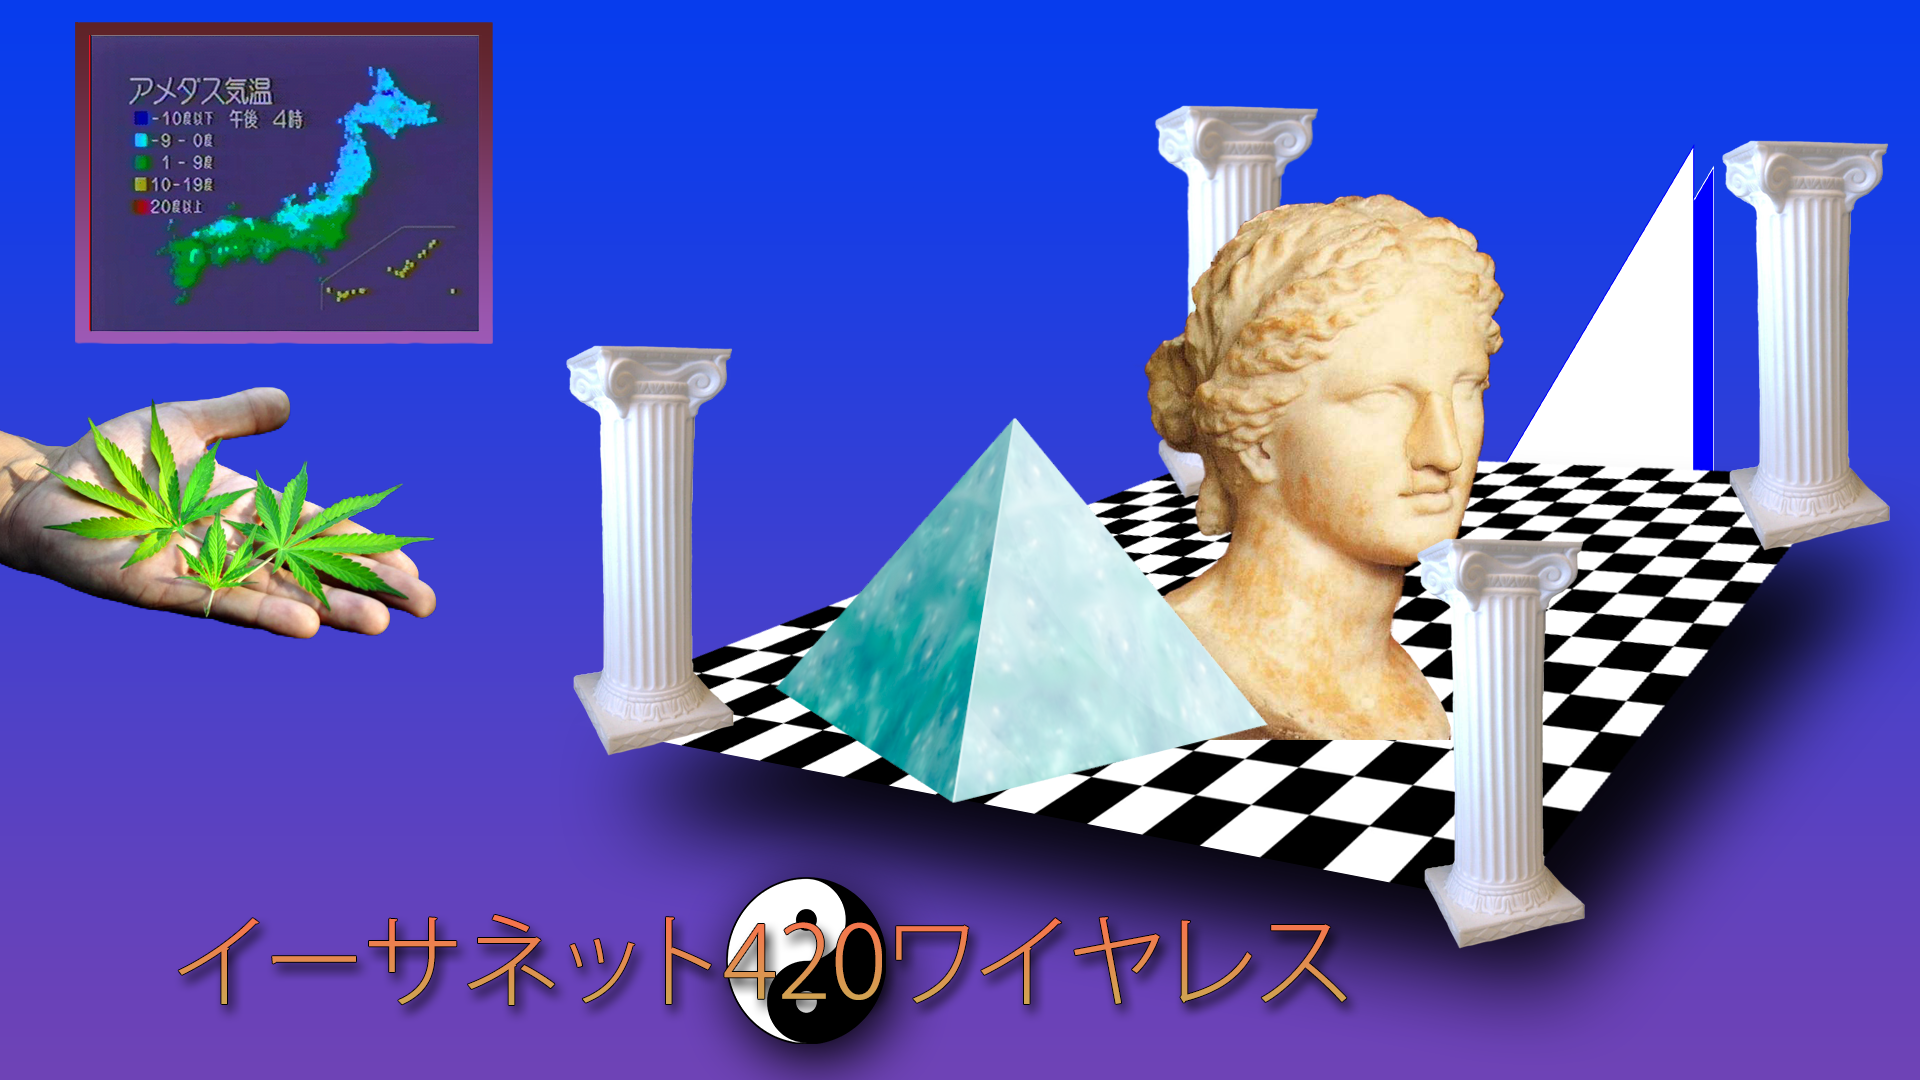 Image Yes Png Aesthetic Wiki Fandom Powered By Wikia